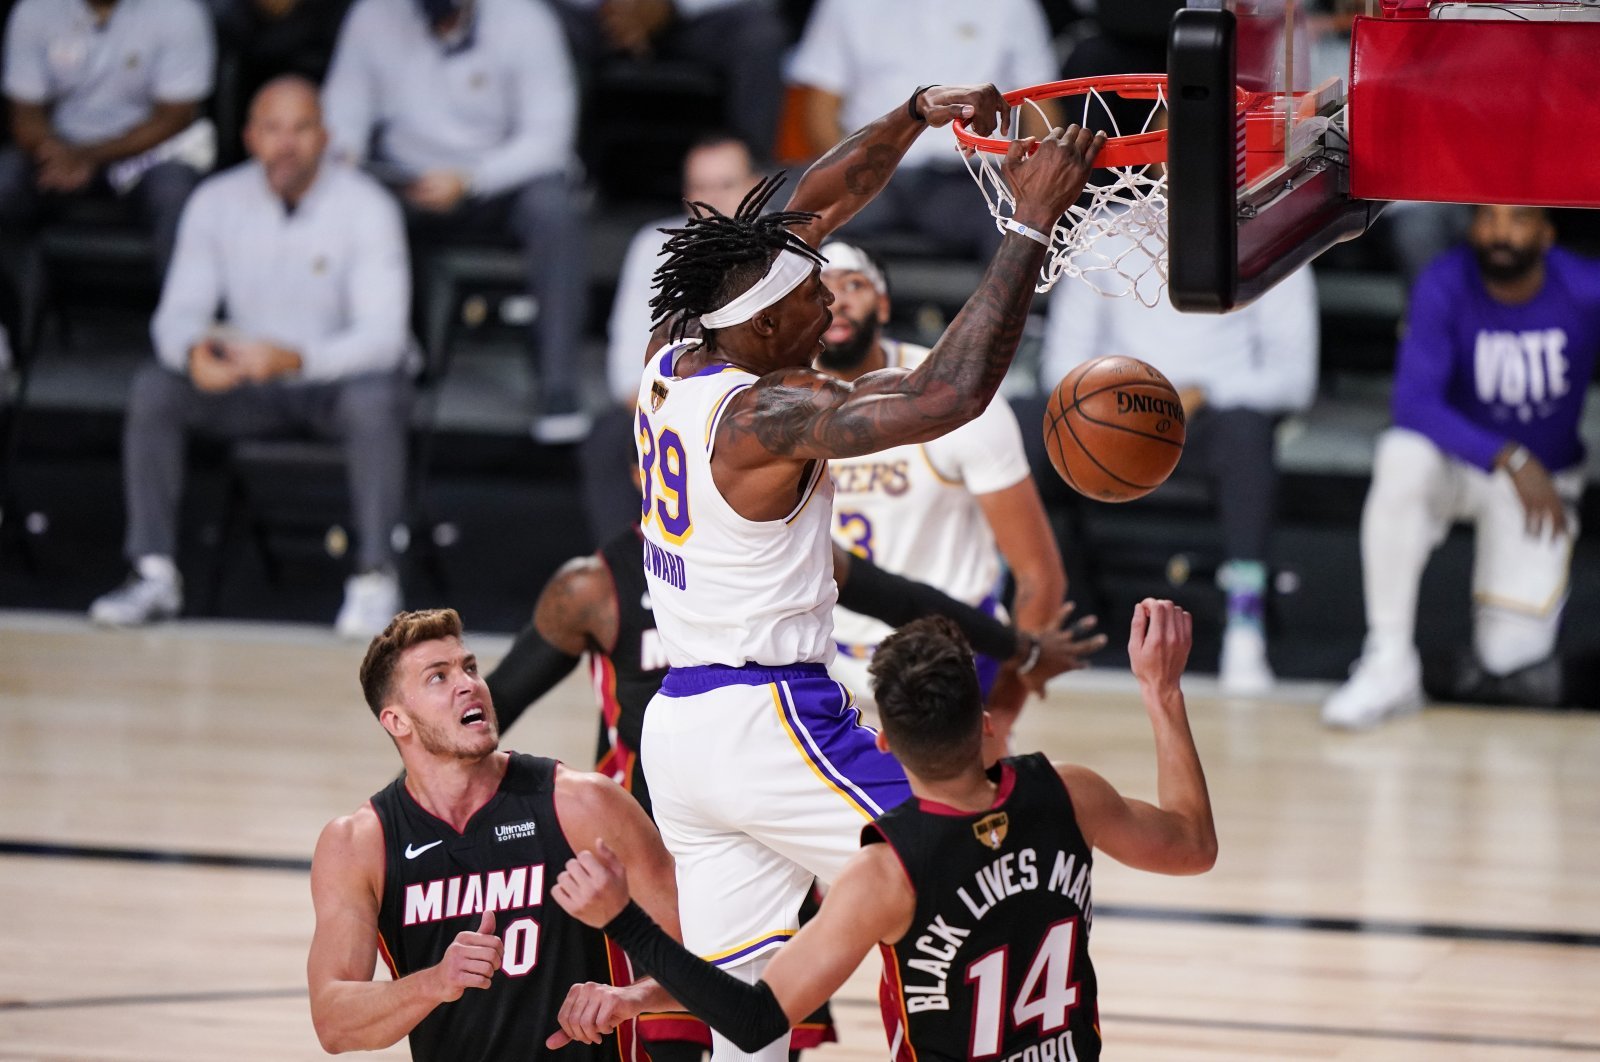 Los Angeles Lakers' Dwight Howard dunks the ball against Miami Heat players during Game 3 of the NBA Finals, in Lake Buena Vista, Florida, U.S., Oct. 4, 2020. (AP Photo)